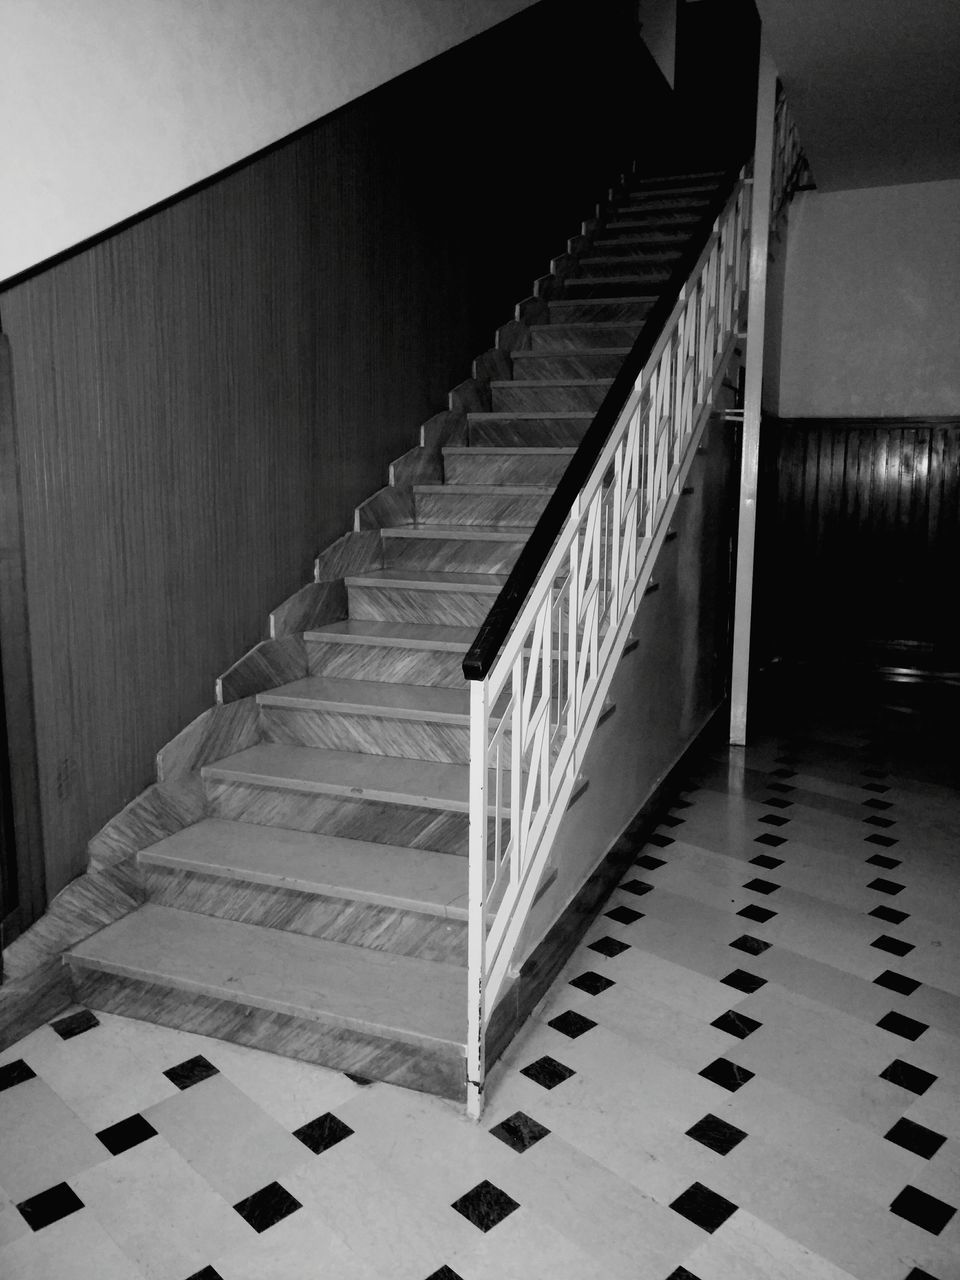 steps and staircases, in a row, steps, staircase, indoors, no people, built structure, the way forward, architecture, day